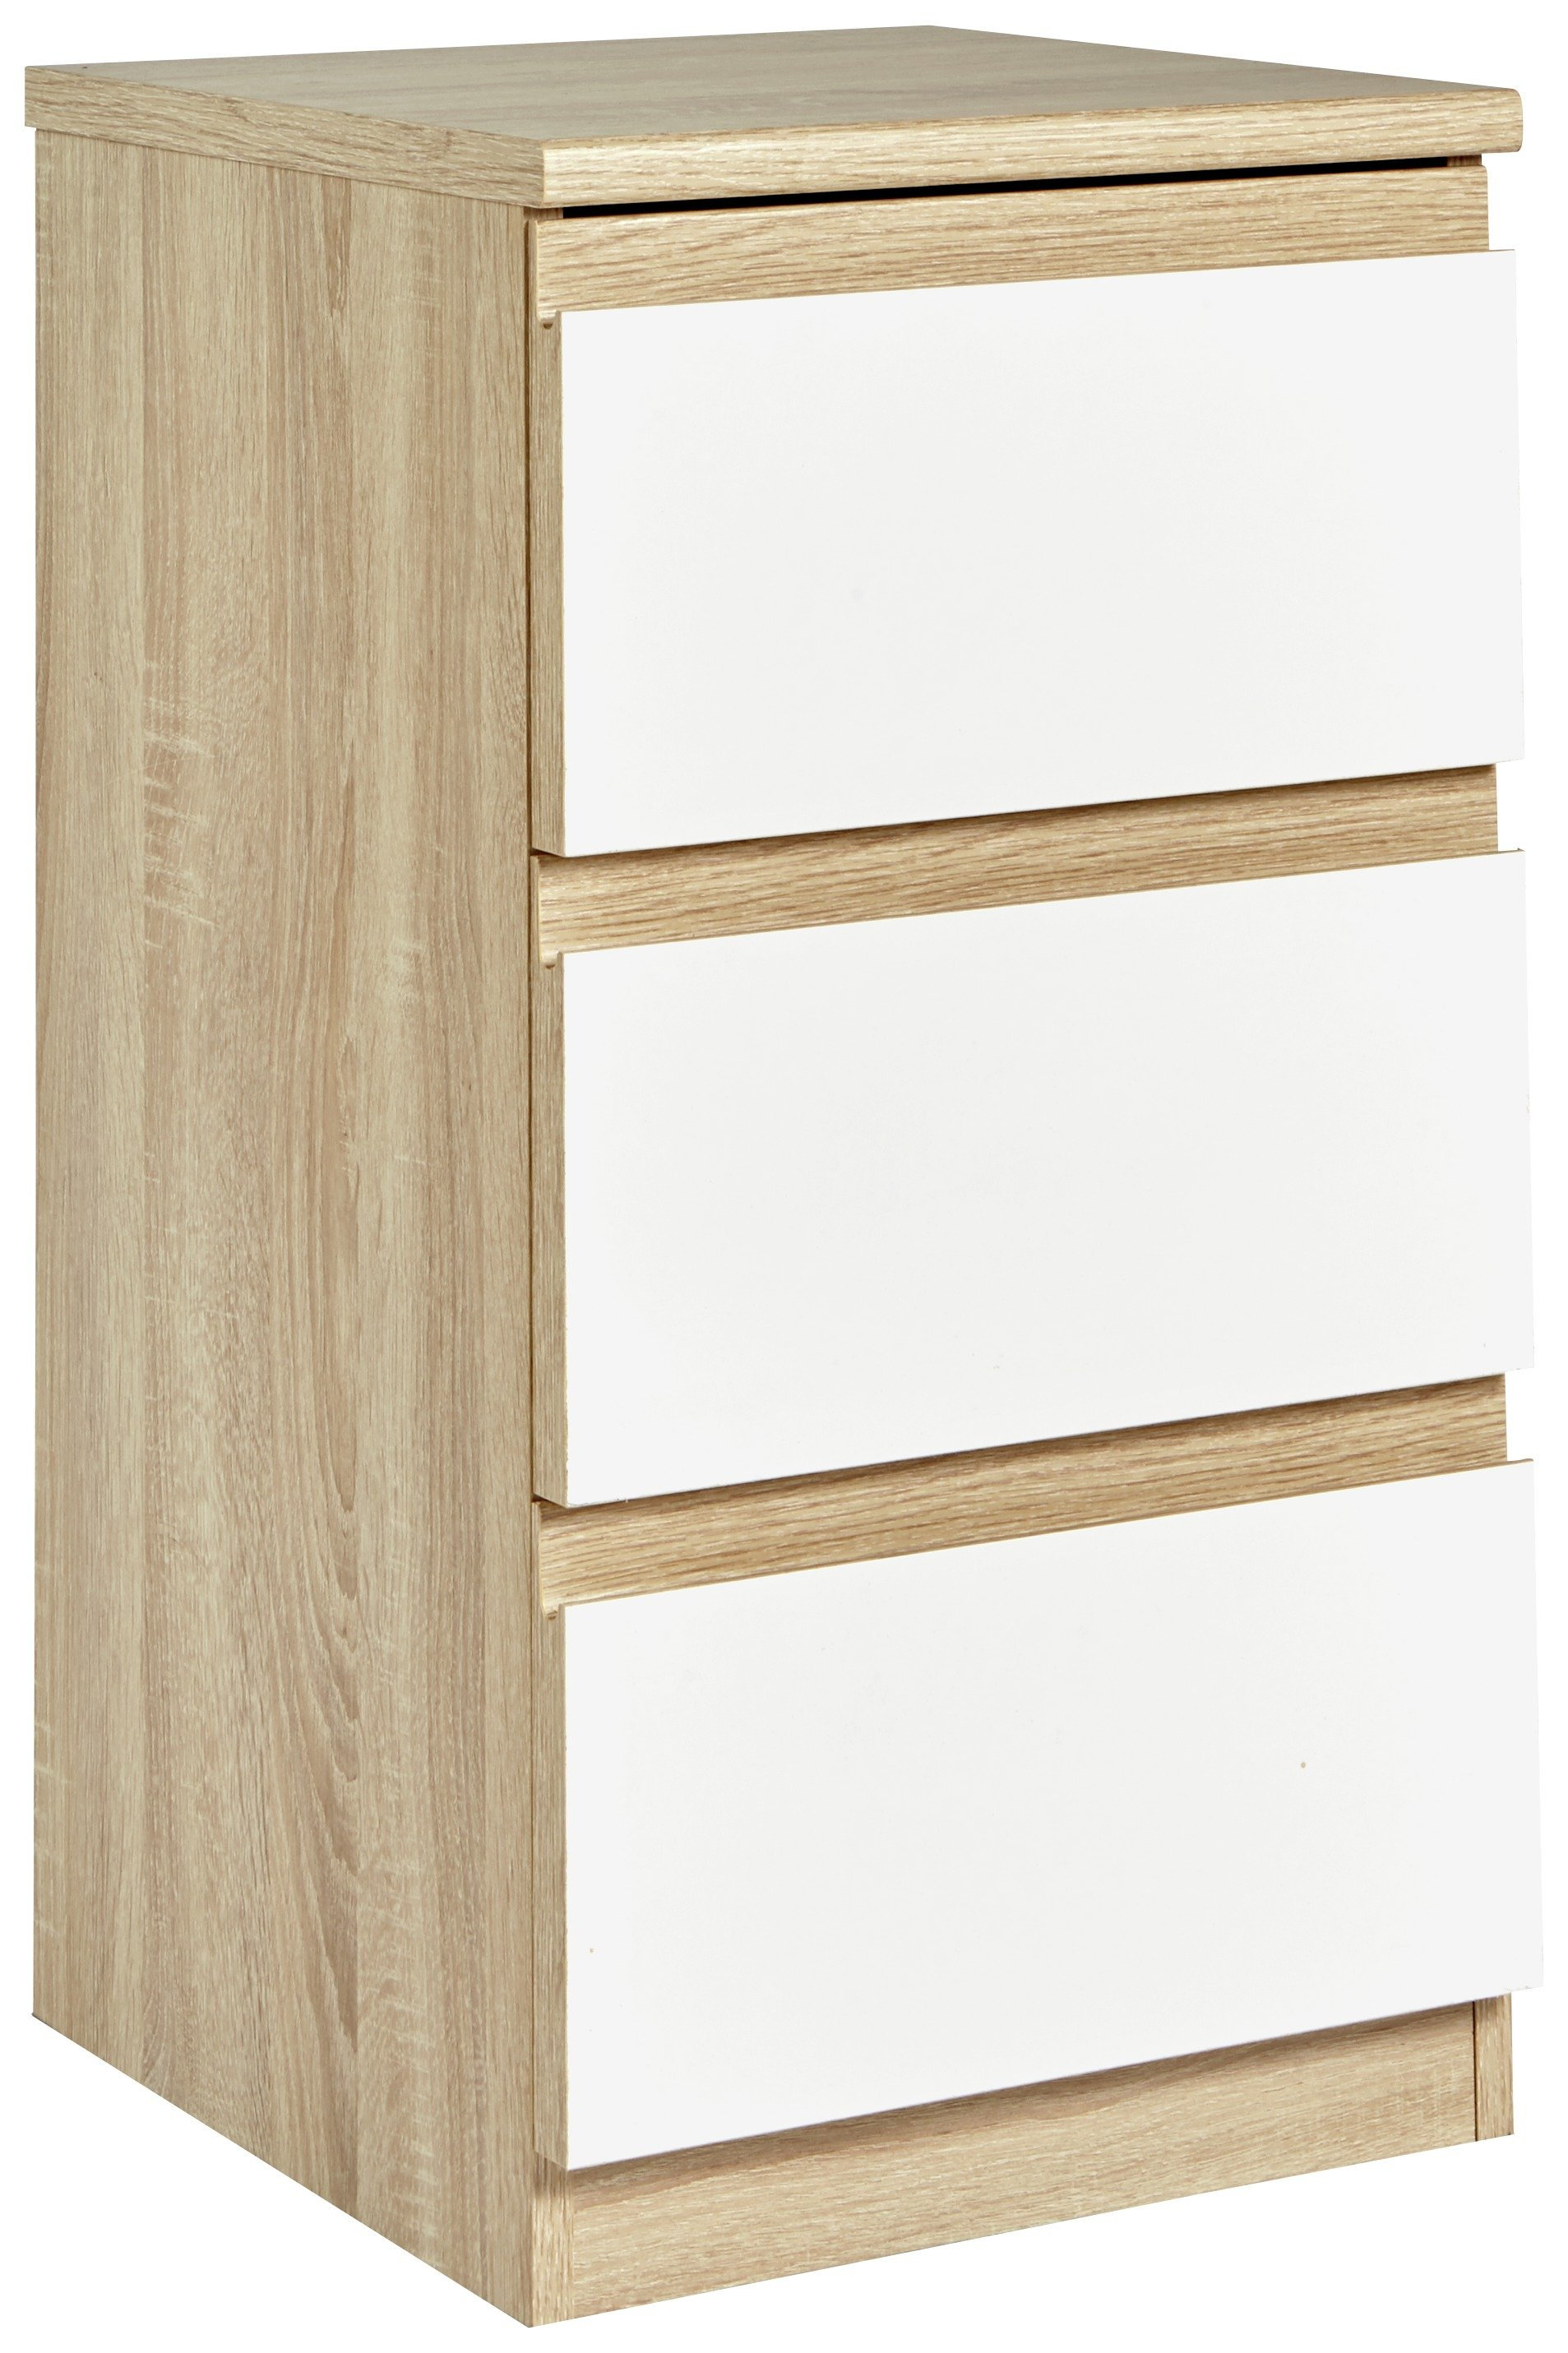 Image of Avenue 3 Drawer Bedside Chest - Oak Effect and White Gloss